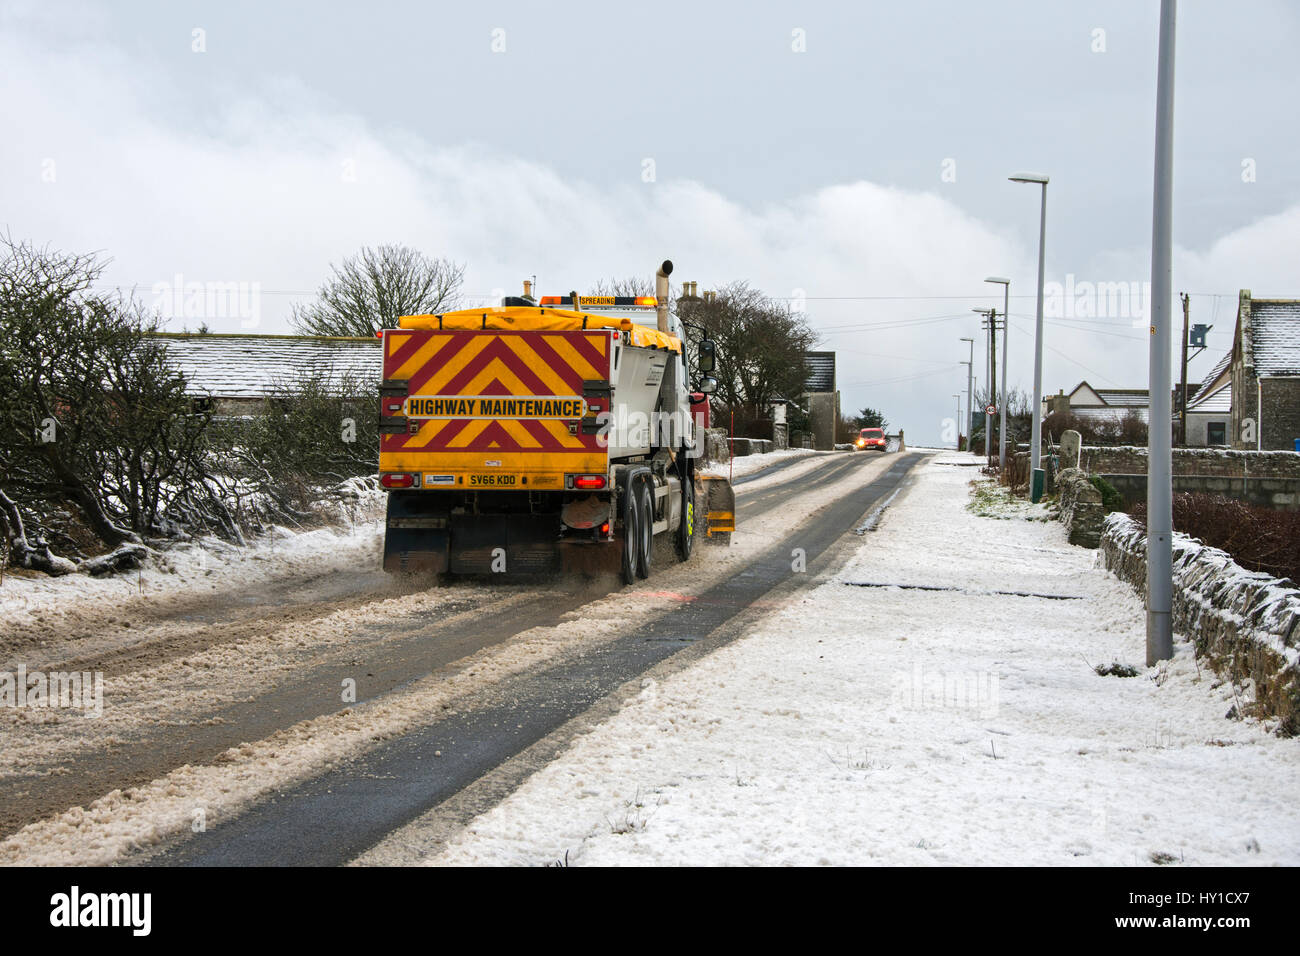 Snow plough - gritter lorry on the A836 trunk road in snowy weather, at the village of Mey, Caithness, Scotland, - Stock Image